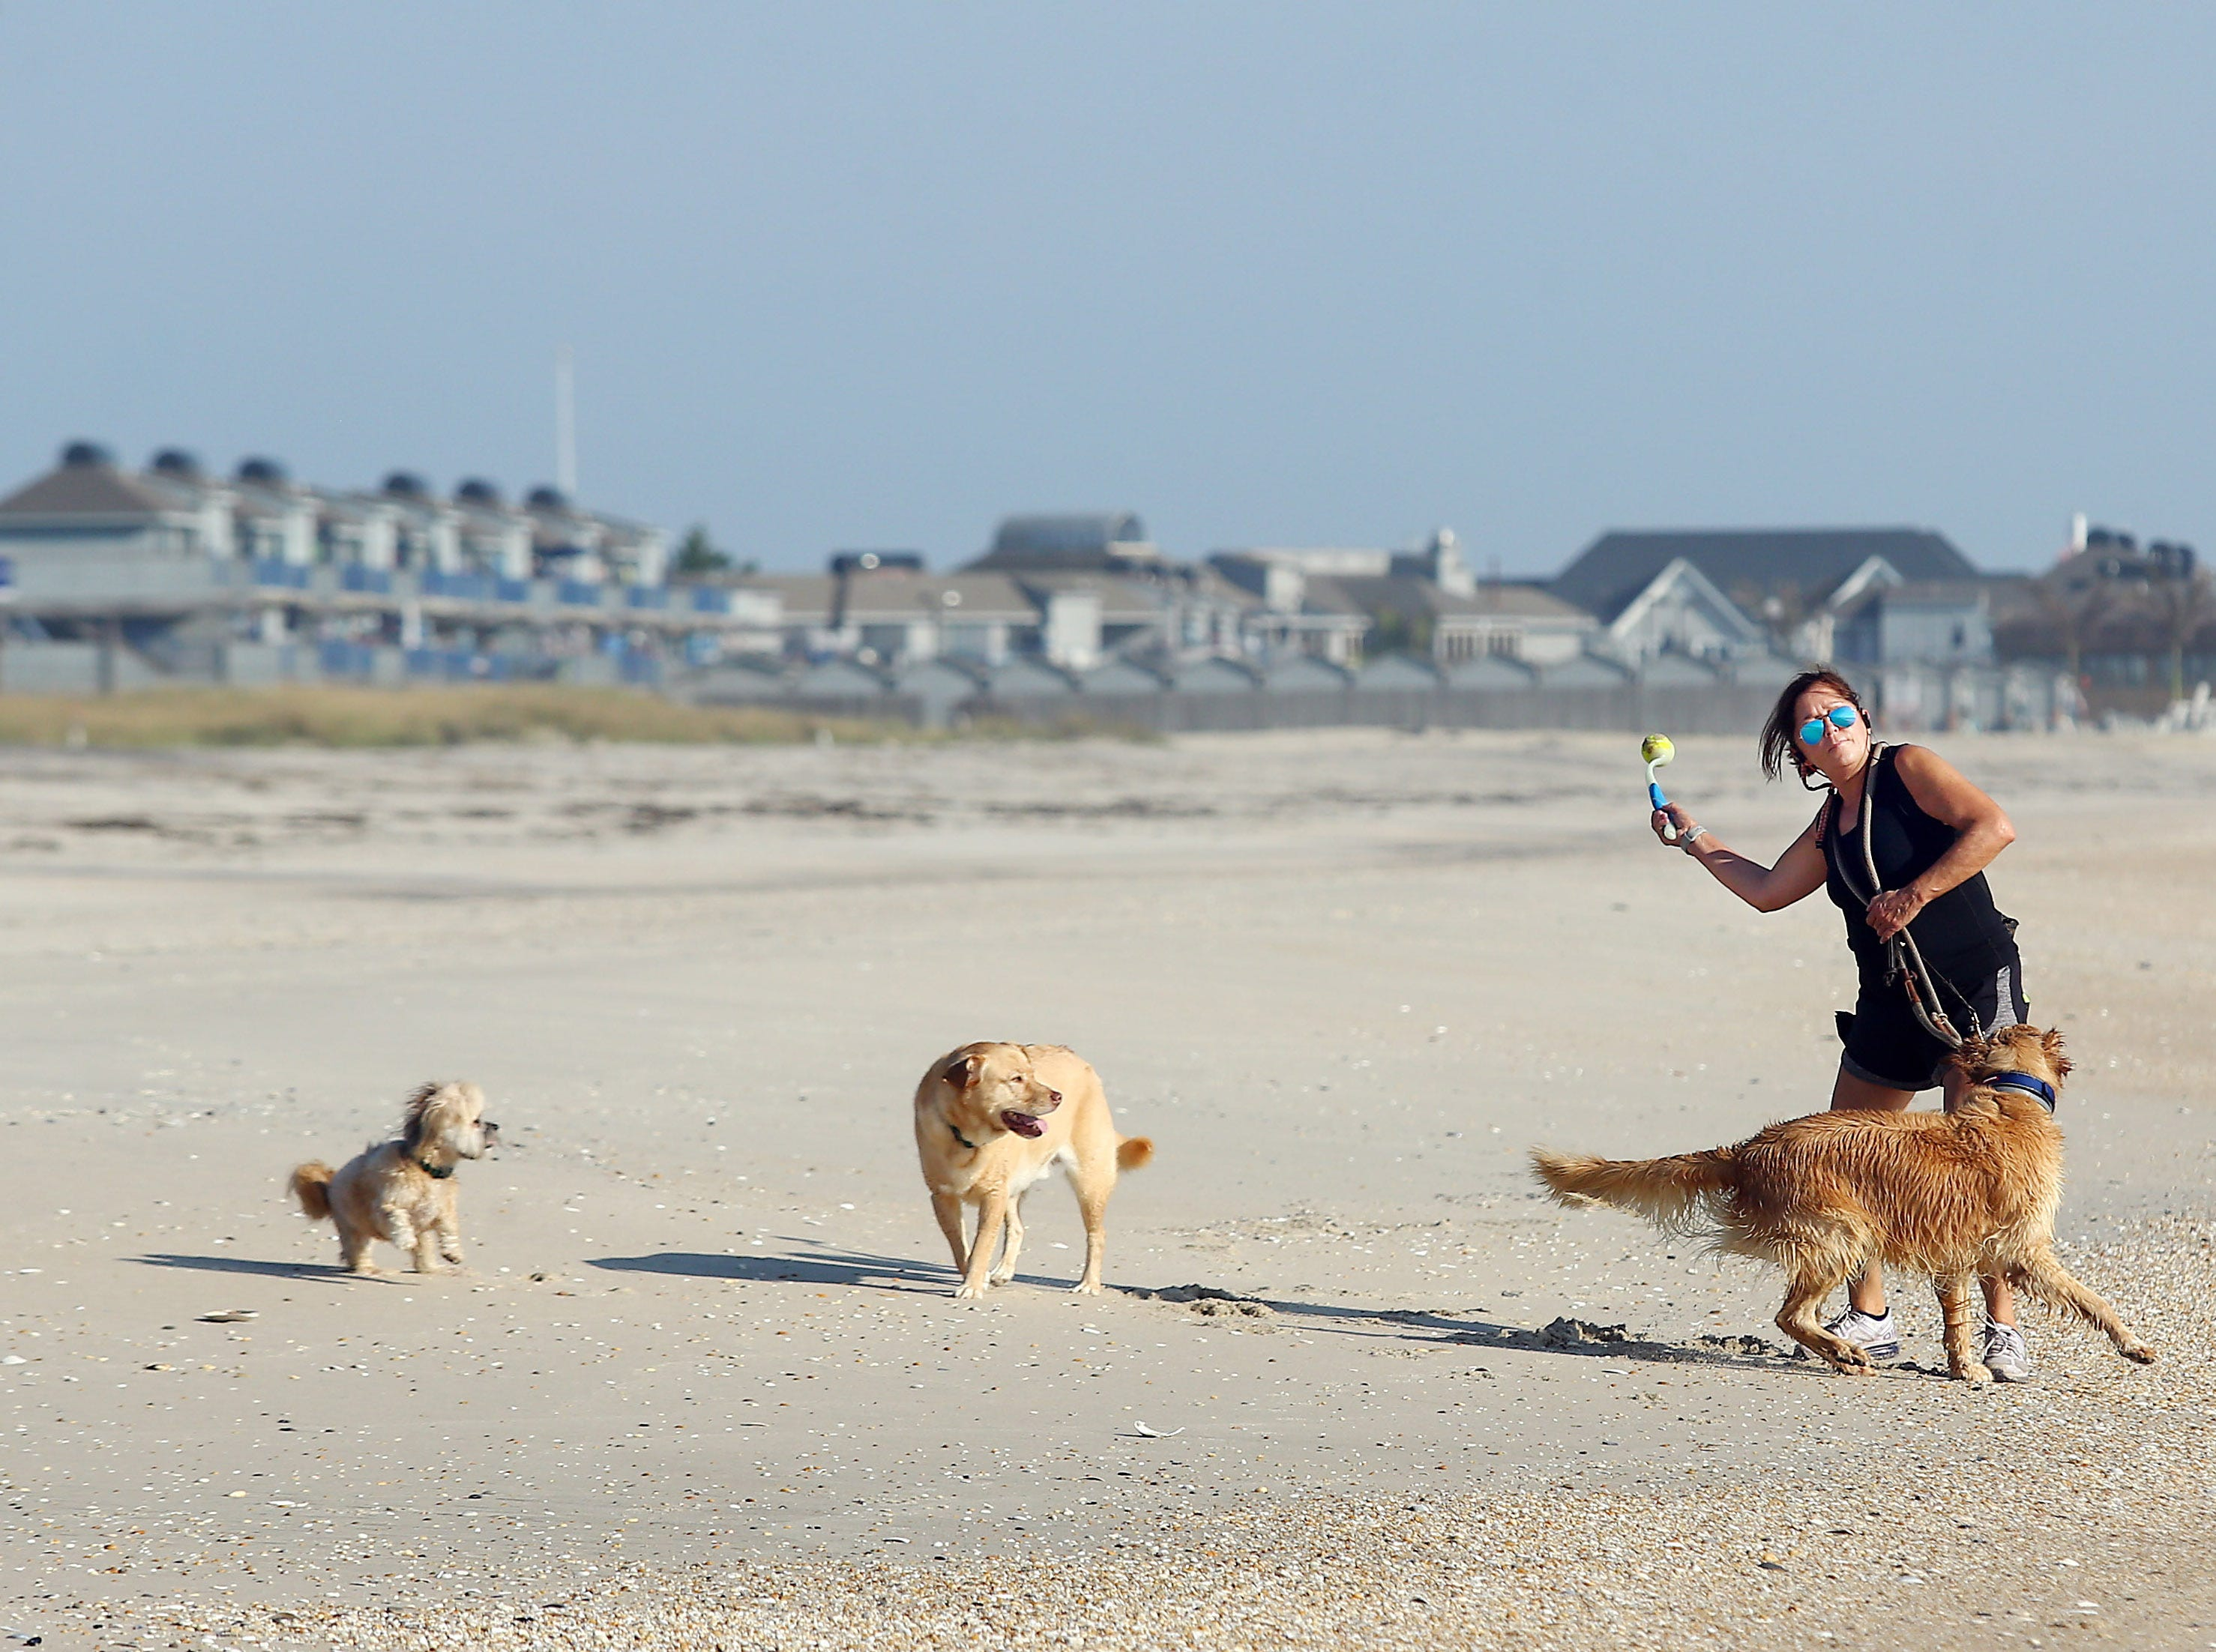 Marjorie Jonasson of Monmouth Beach throws a ball to her dog on a beautiful morning on Monmouth Beach. Summer shore guide. September 19, 2018, Monmouth Beach, NJ